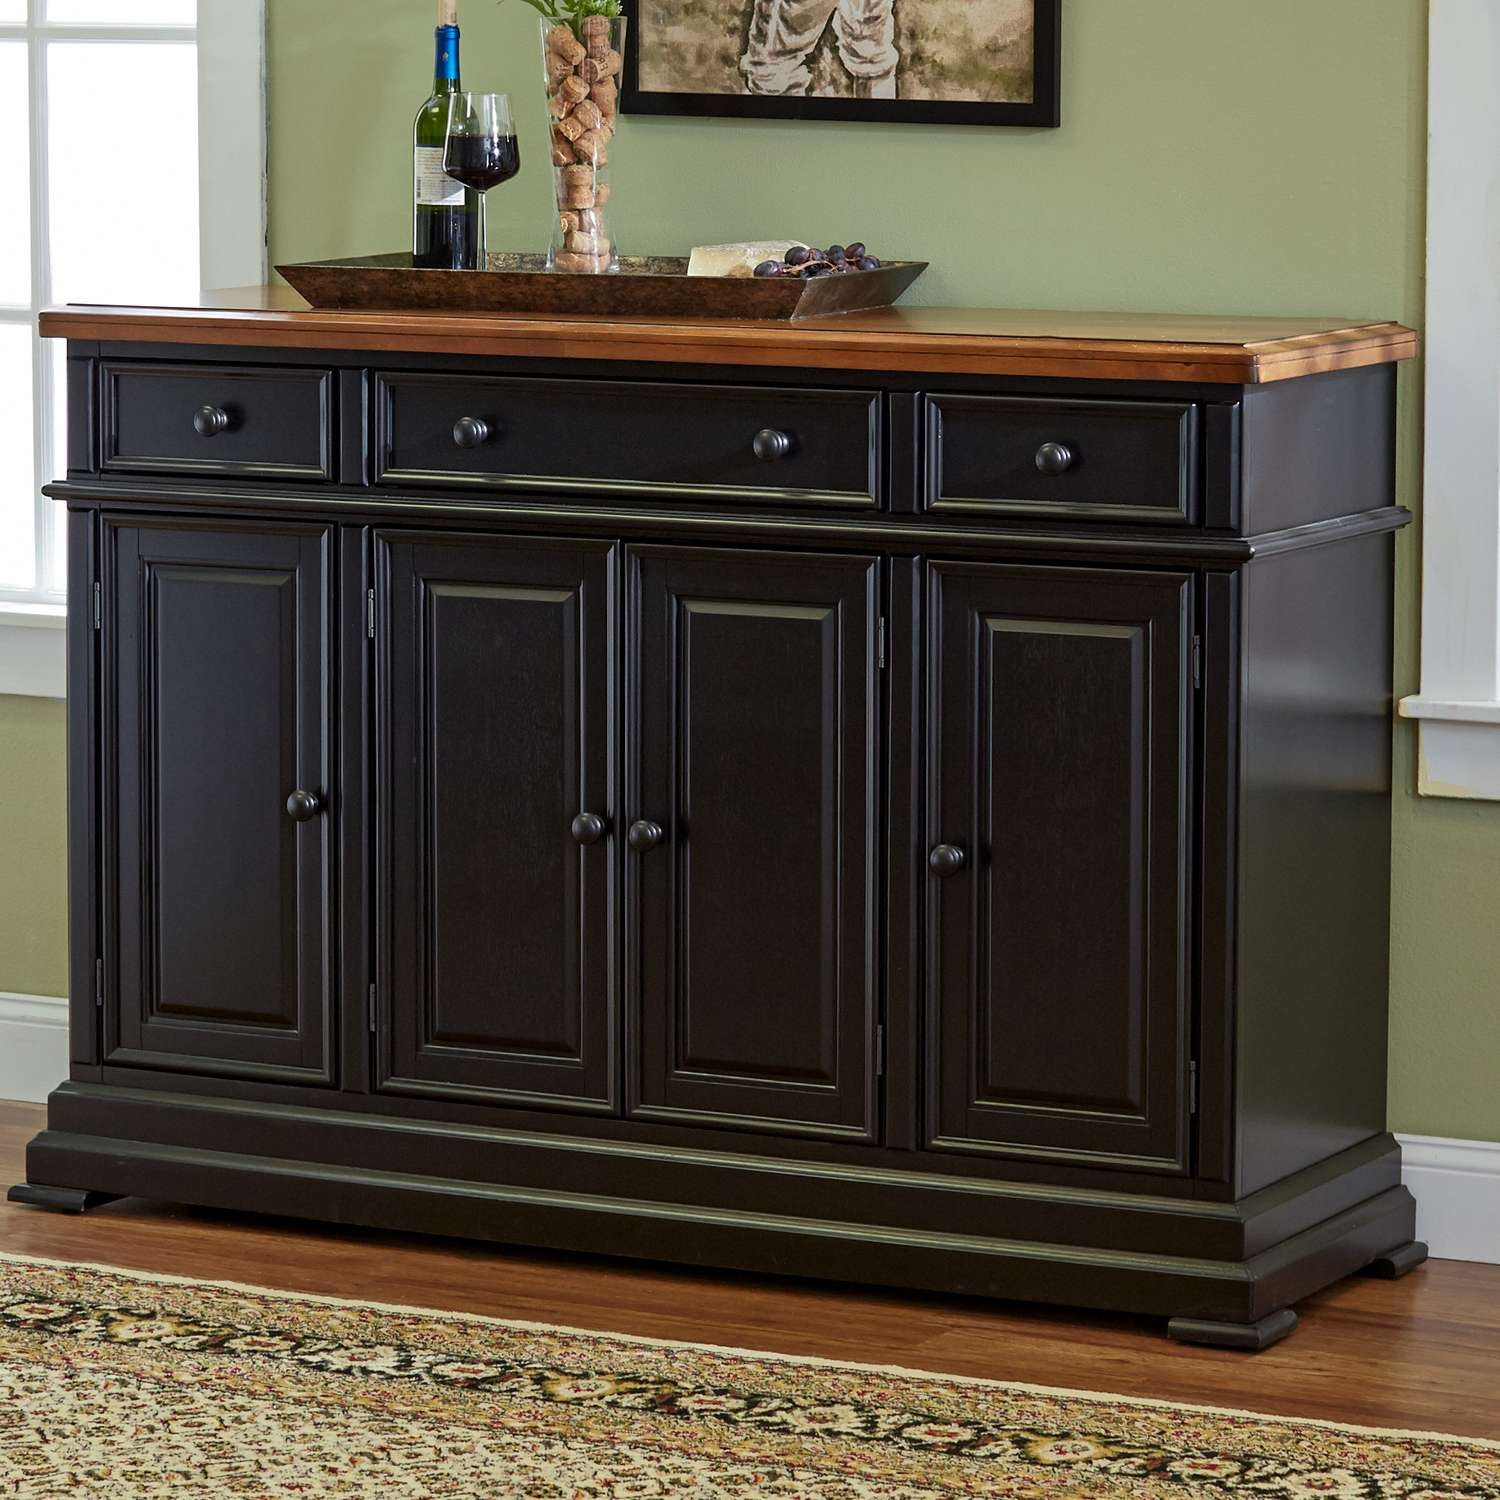 Furniture: White Sideboard Buffet With Unique Black Table Lamp And With Regard To Black Buffet Sideboards (View 10 of 20)